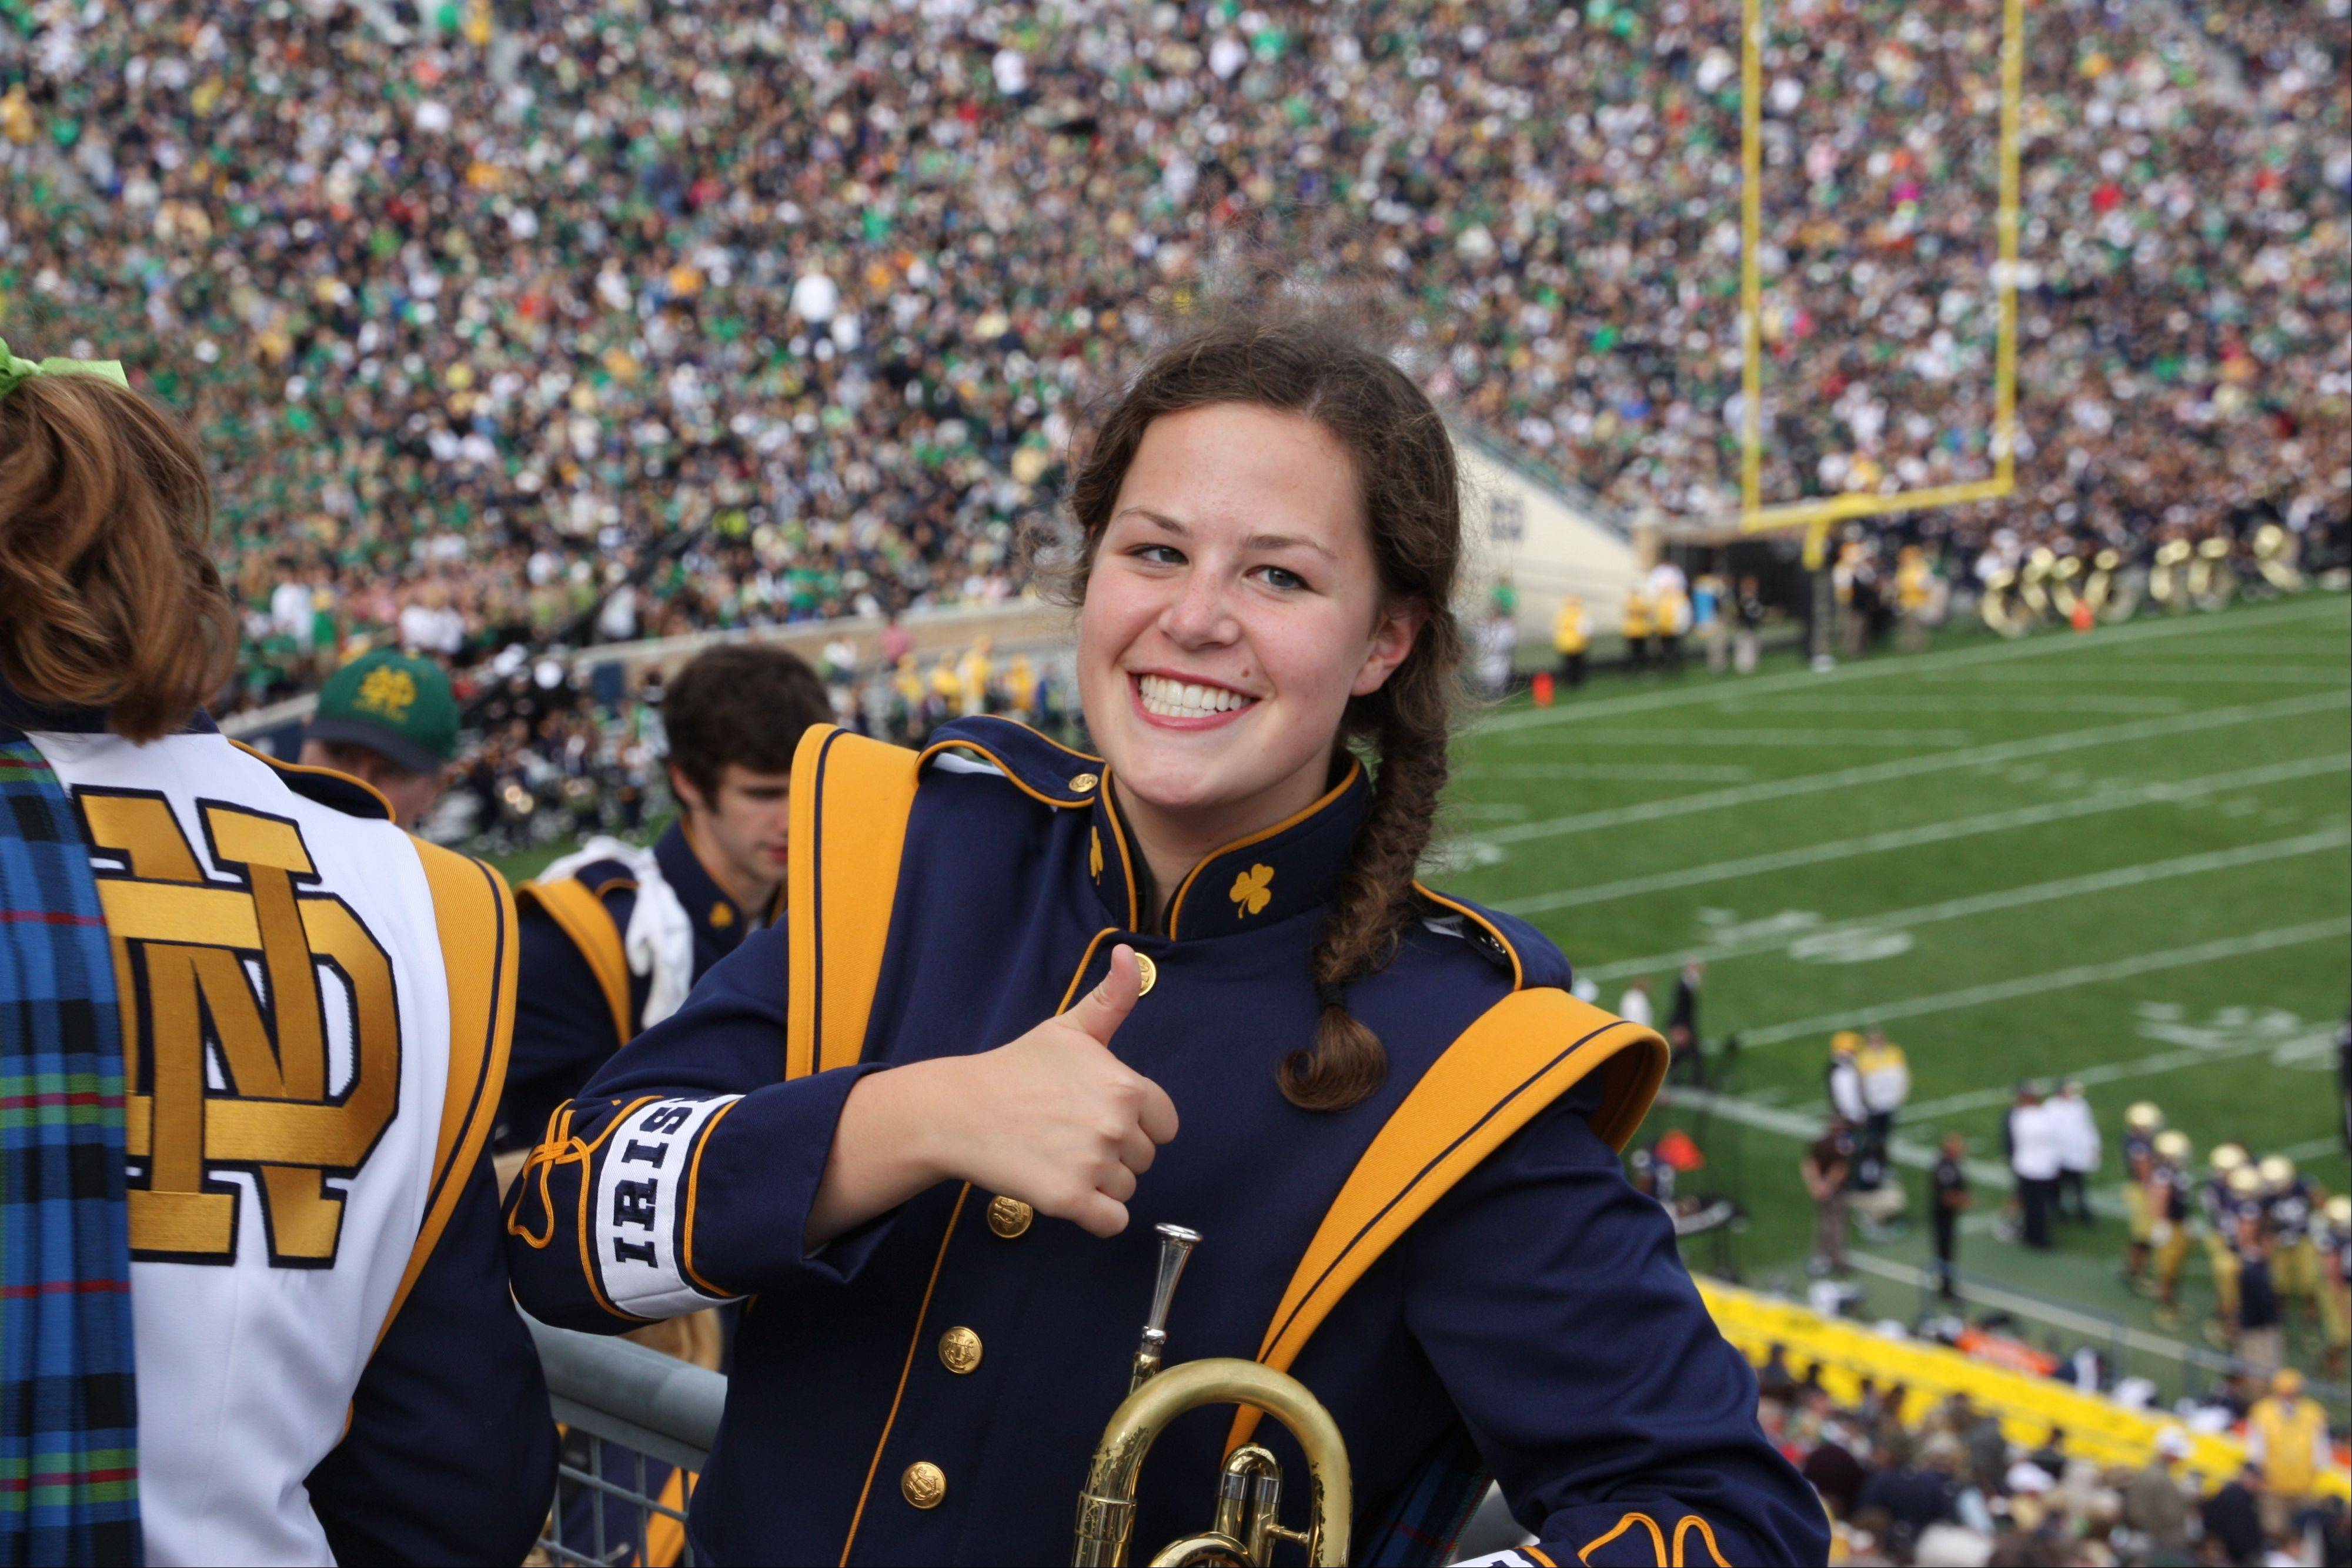 Maureen Daday of Arlington Heights gives a thumbs-up at a Notre Dame home game. She accompanied the band to the New Era Pinstripe Bowl at Yankee Stadium in New York